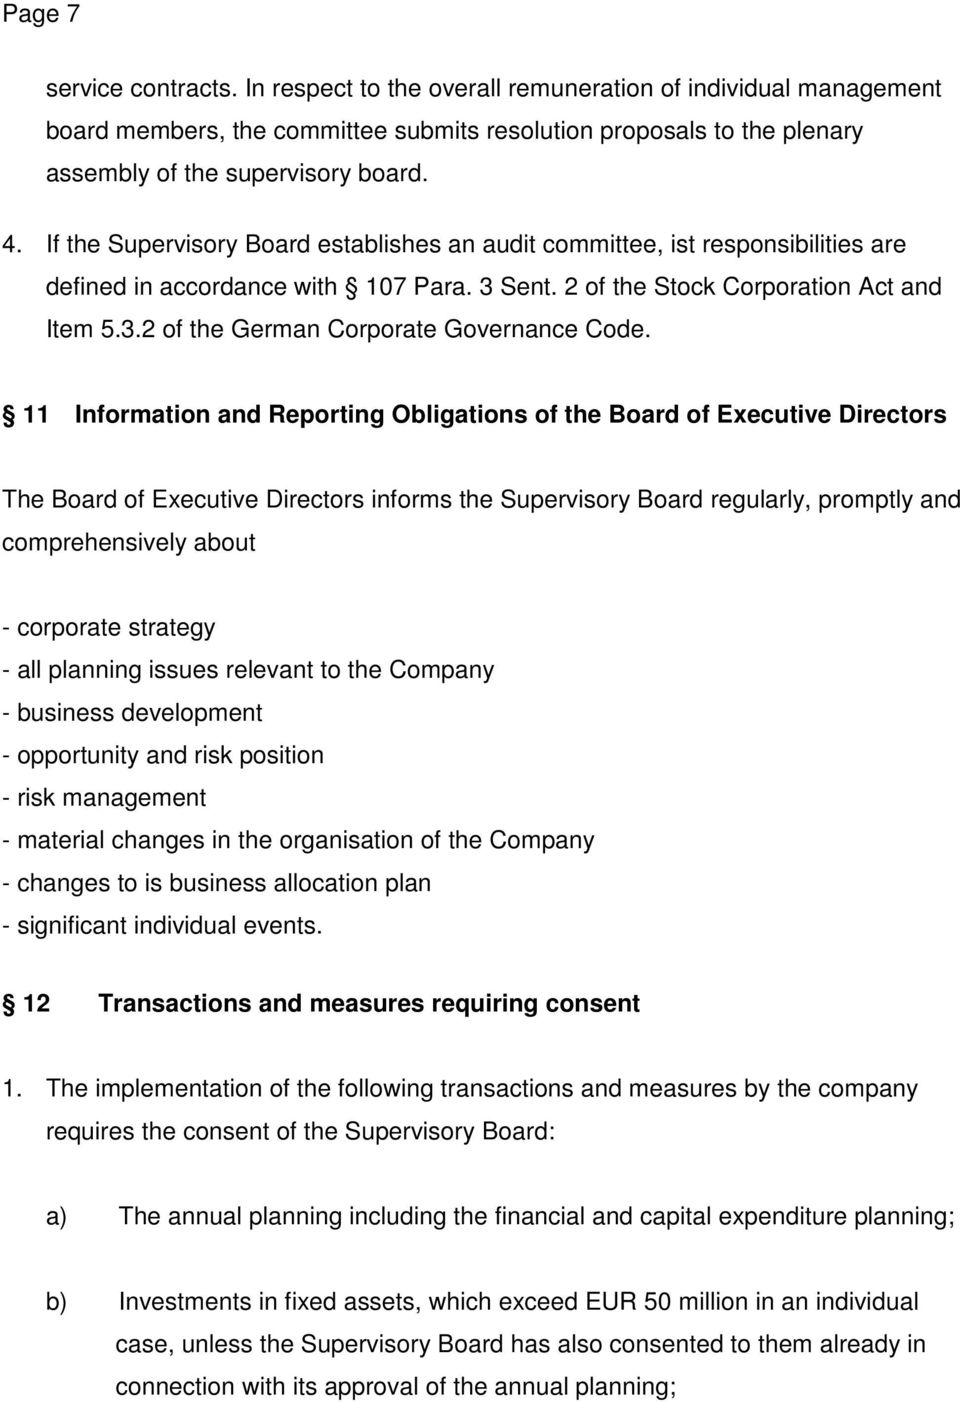 11 Information and Reporting Obligations of the Board of Executive Directors The Board of Executive Directors informs the Supervisory Board regularly, promptly and comprehensively about - corporate